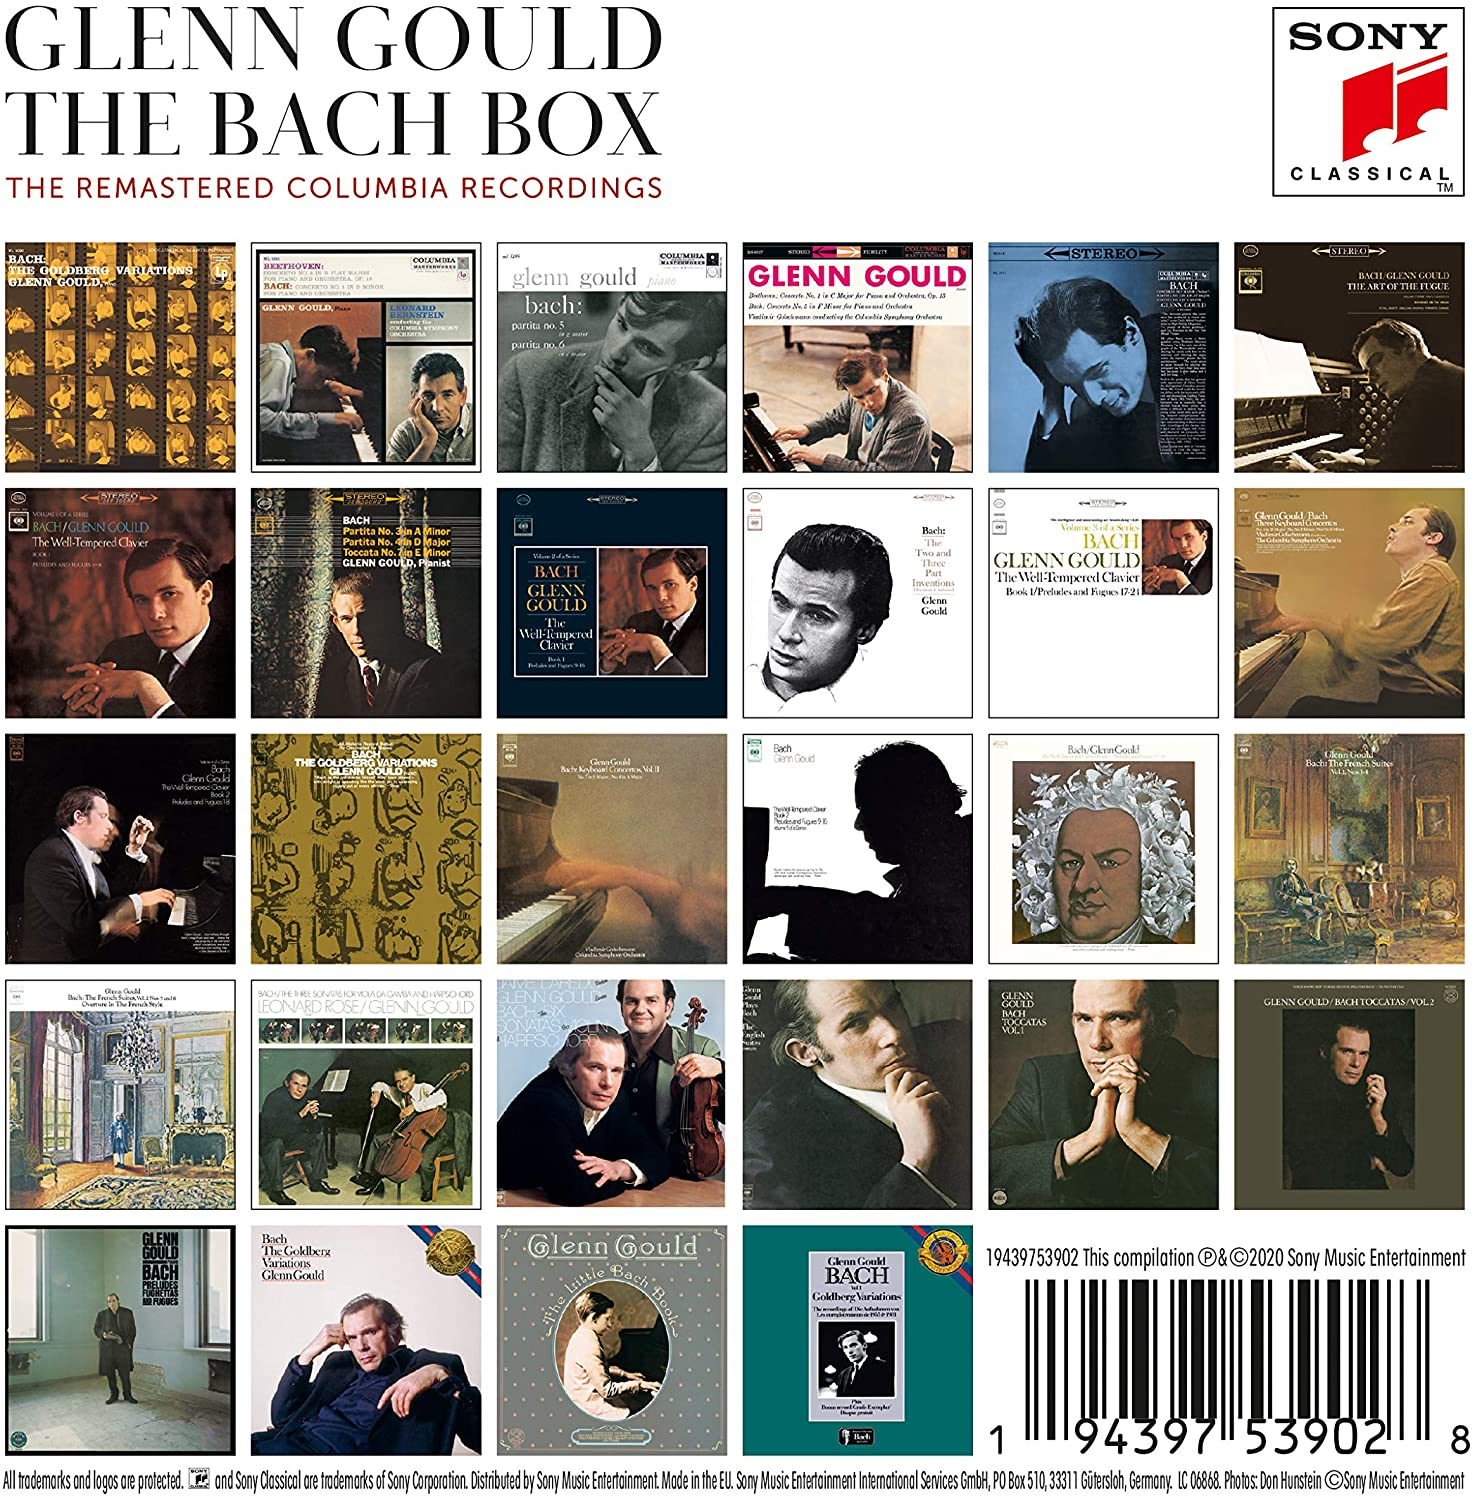 gould-cover.jpg